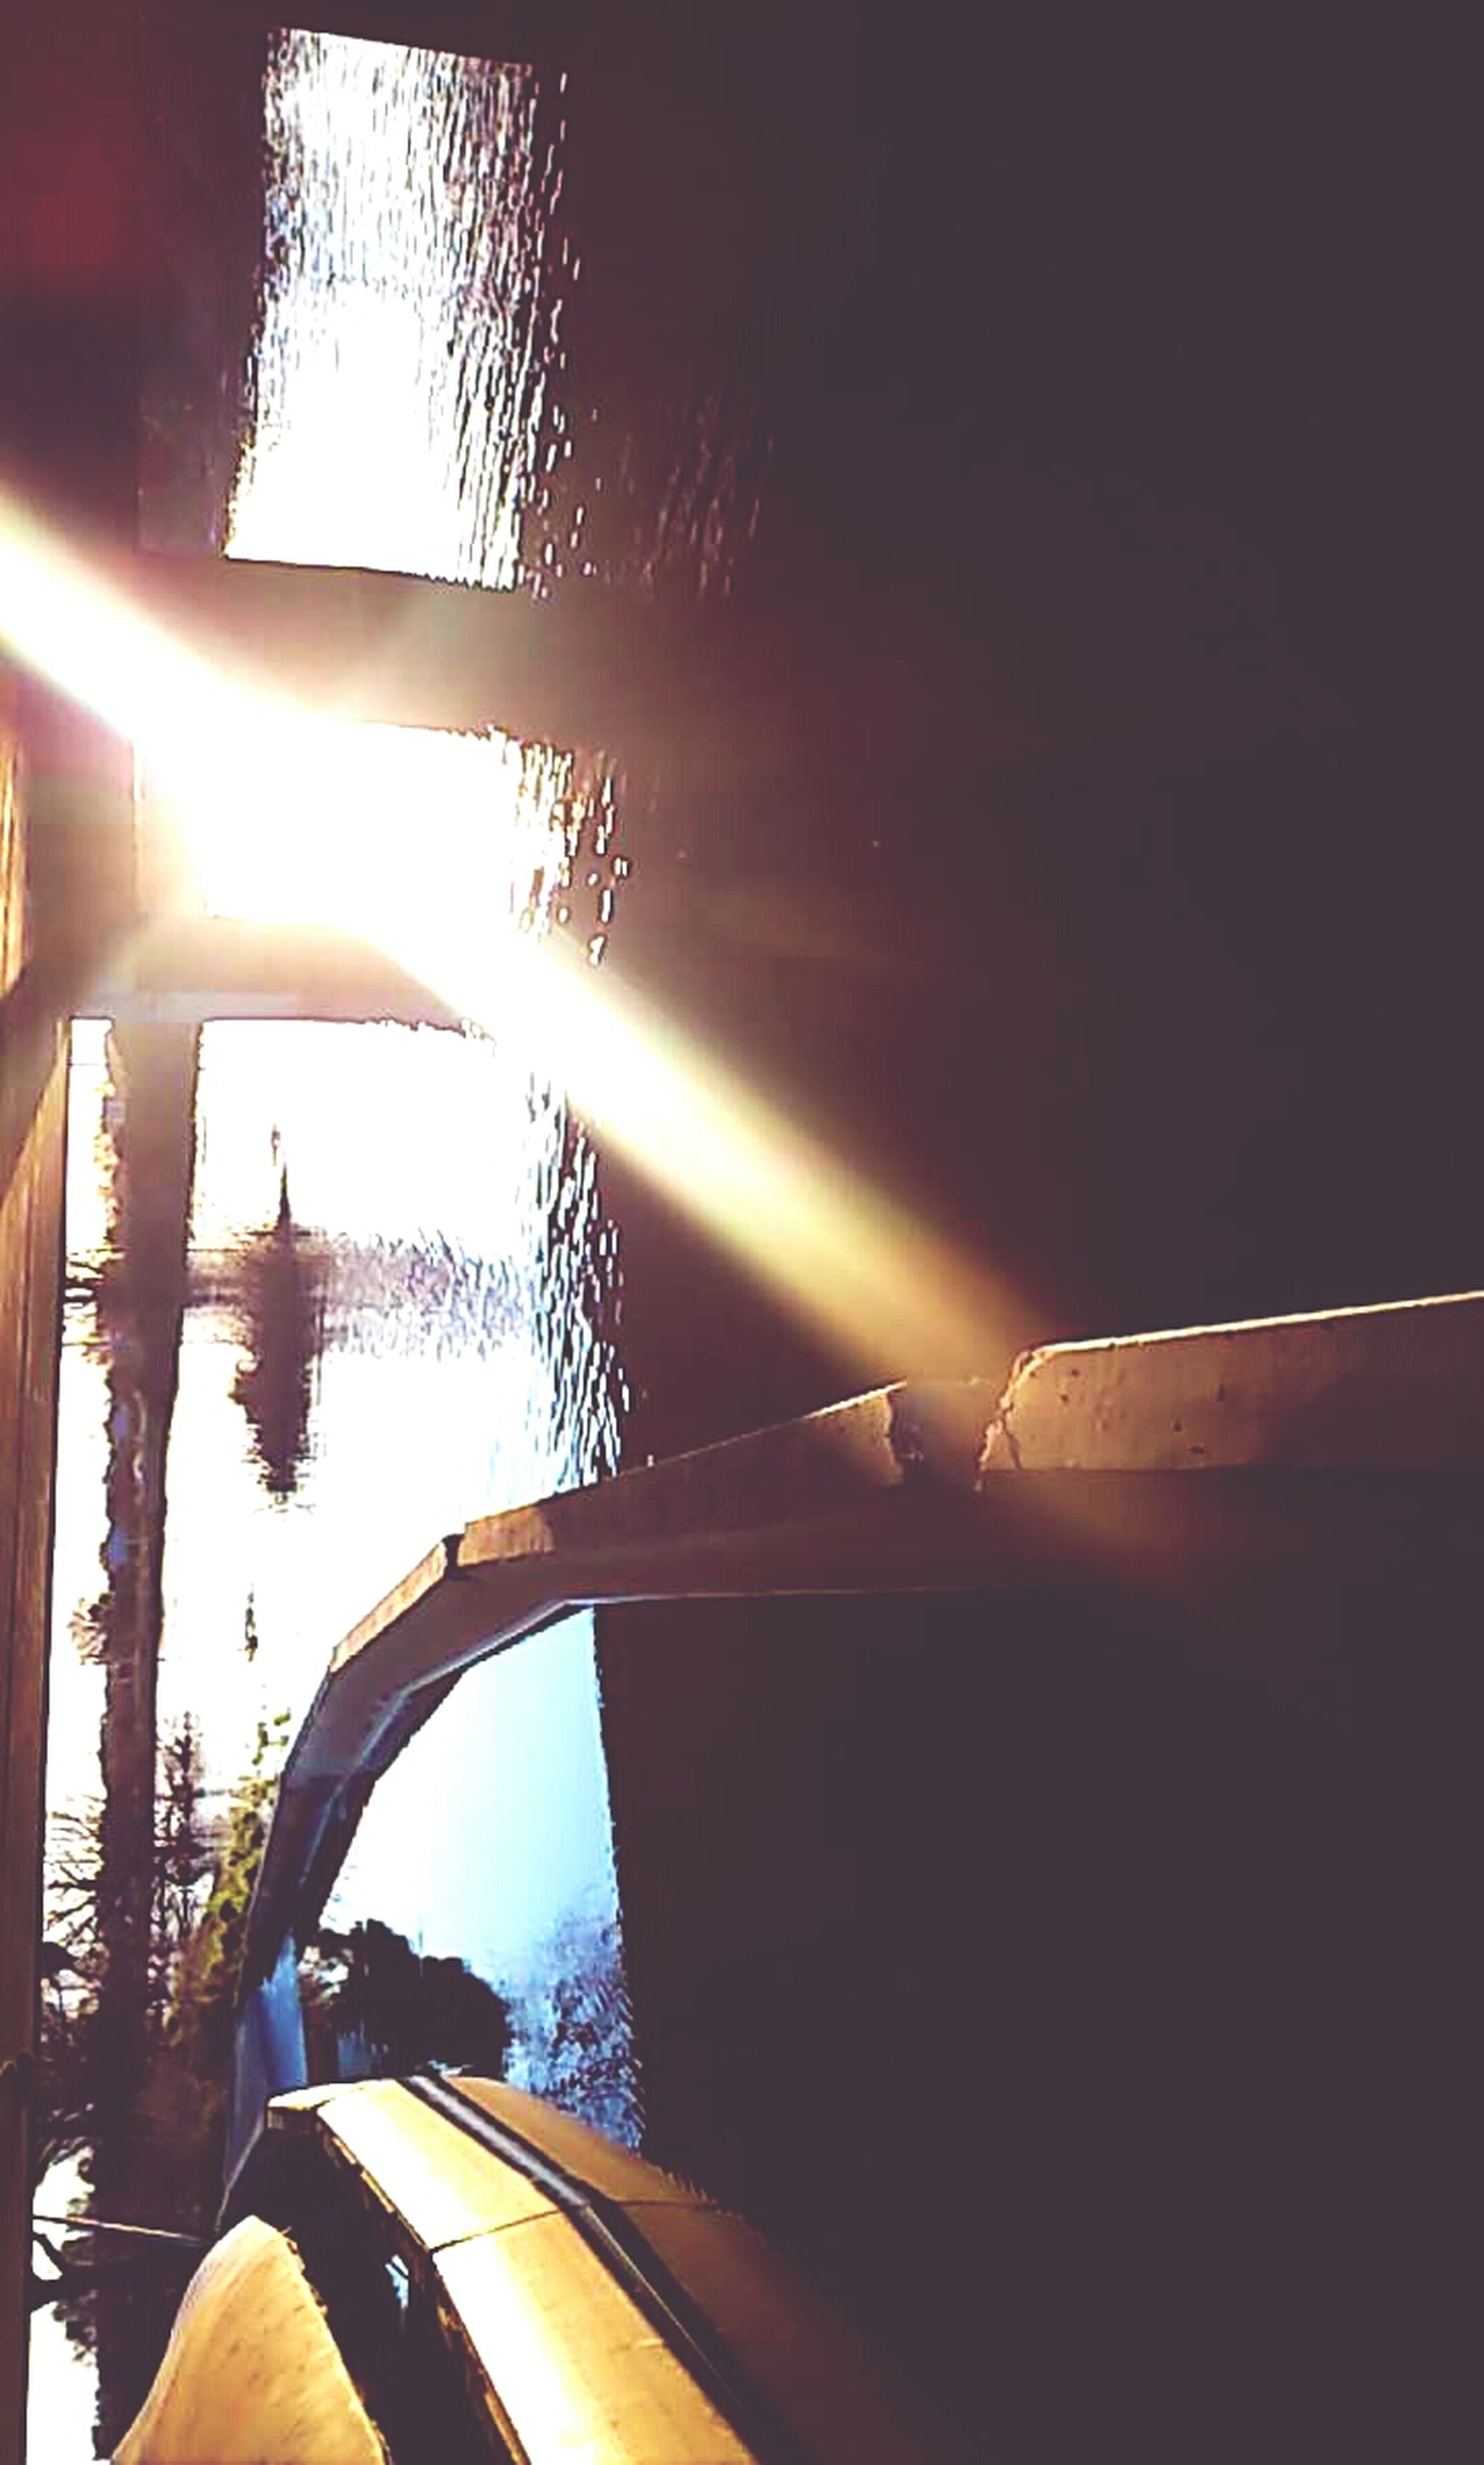 transportation, sun, low angle view, mode of transport, sunlight, sunbeam, lens flare, silhouette, one person, sky, part of, car, sunset, cropped, land vehicle, clear sky, outdoors, street light, connection, on the move